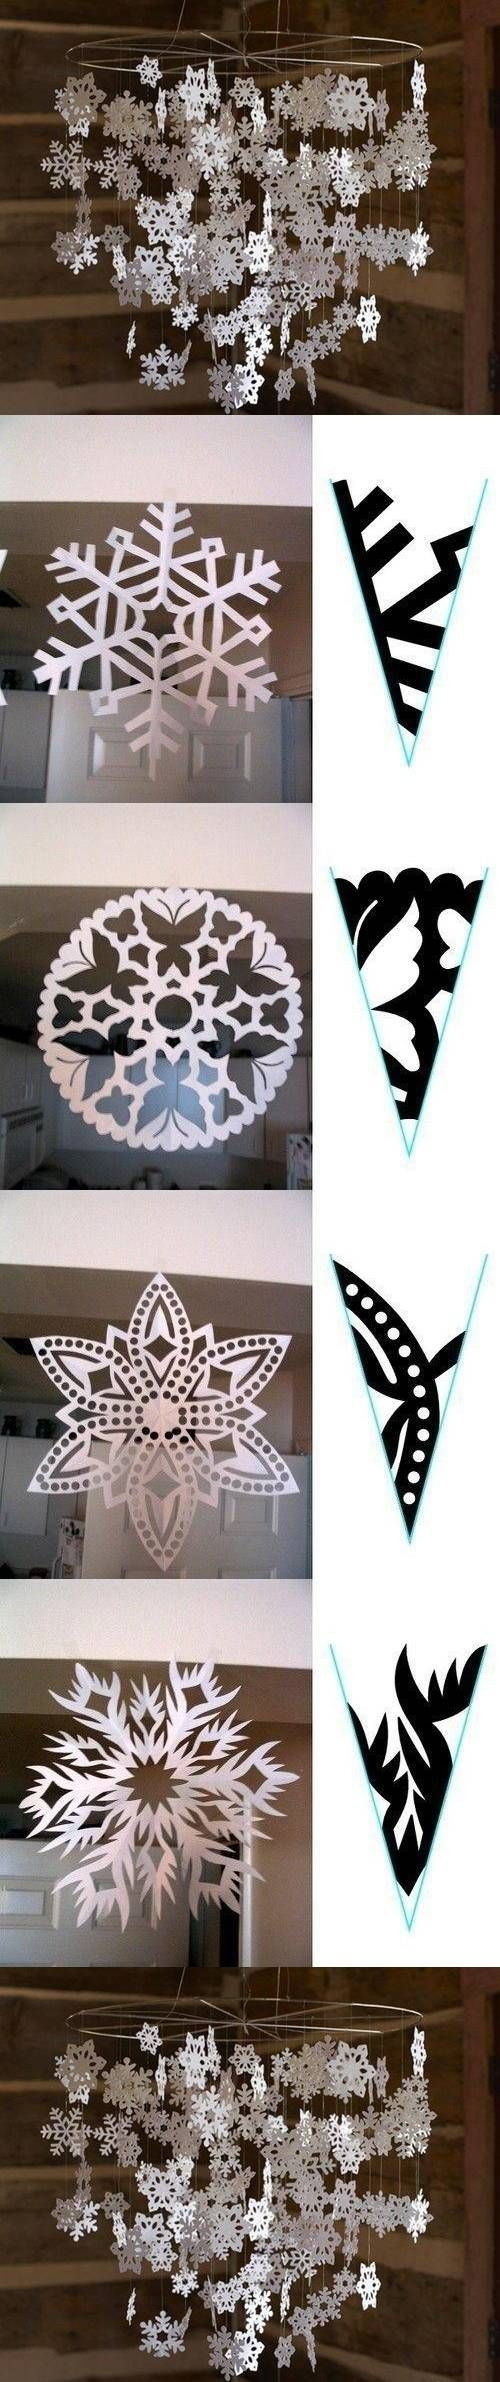 88 best kirigami images on pinterest paper paper for Diy snowflakes paper pattern